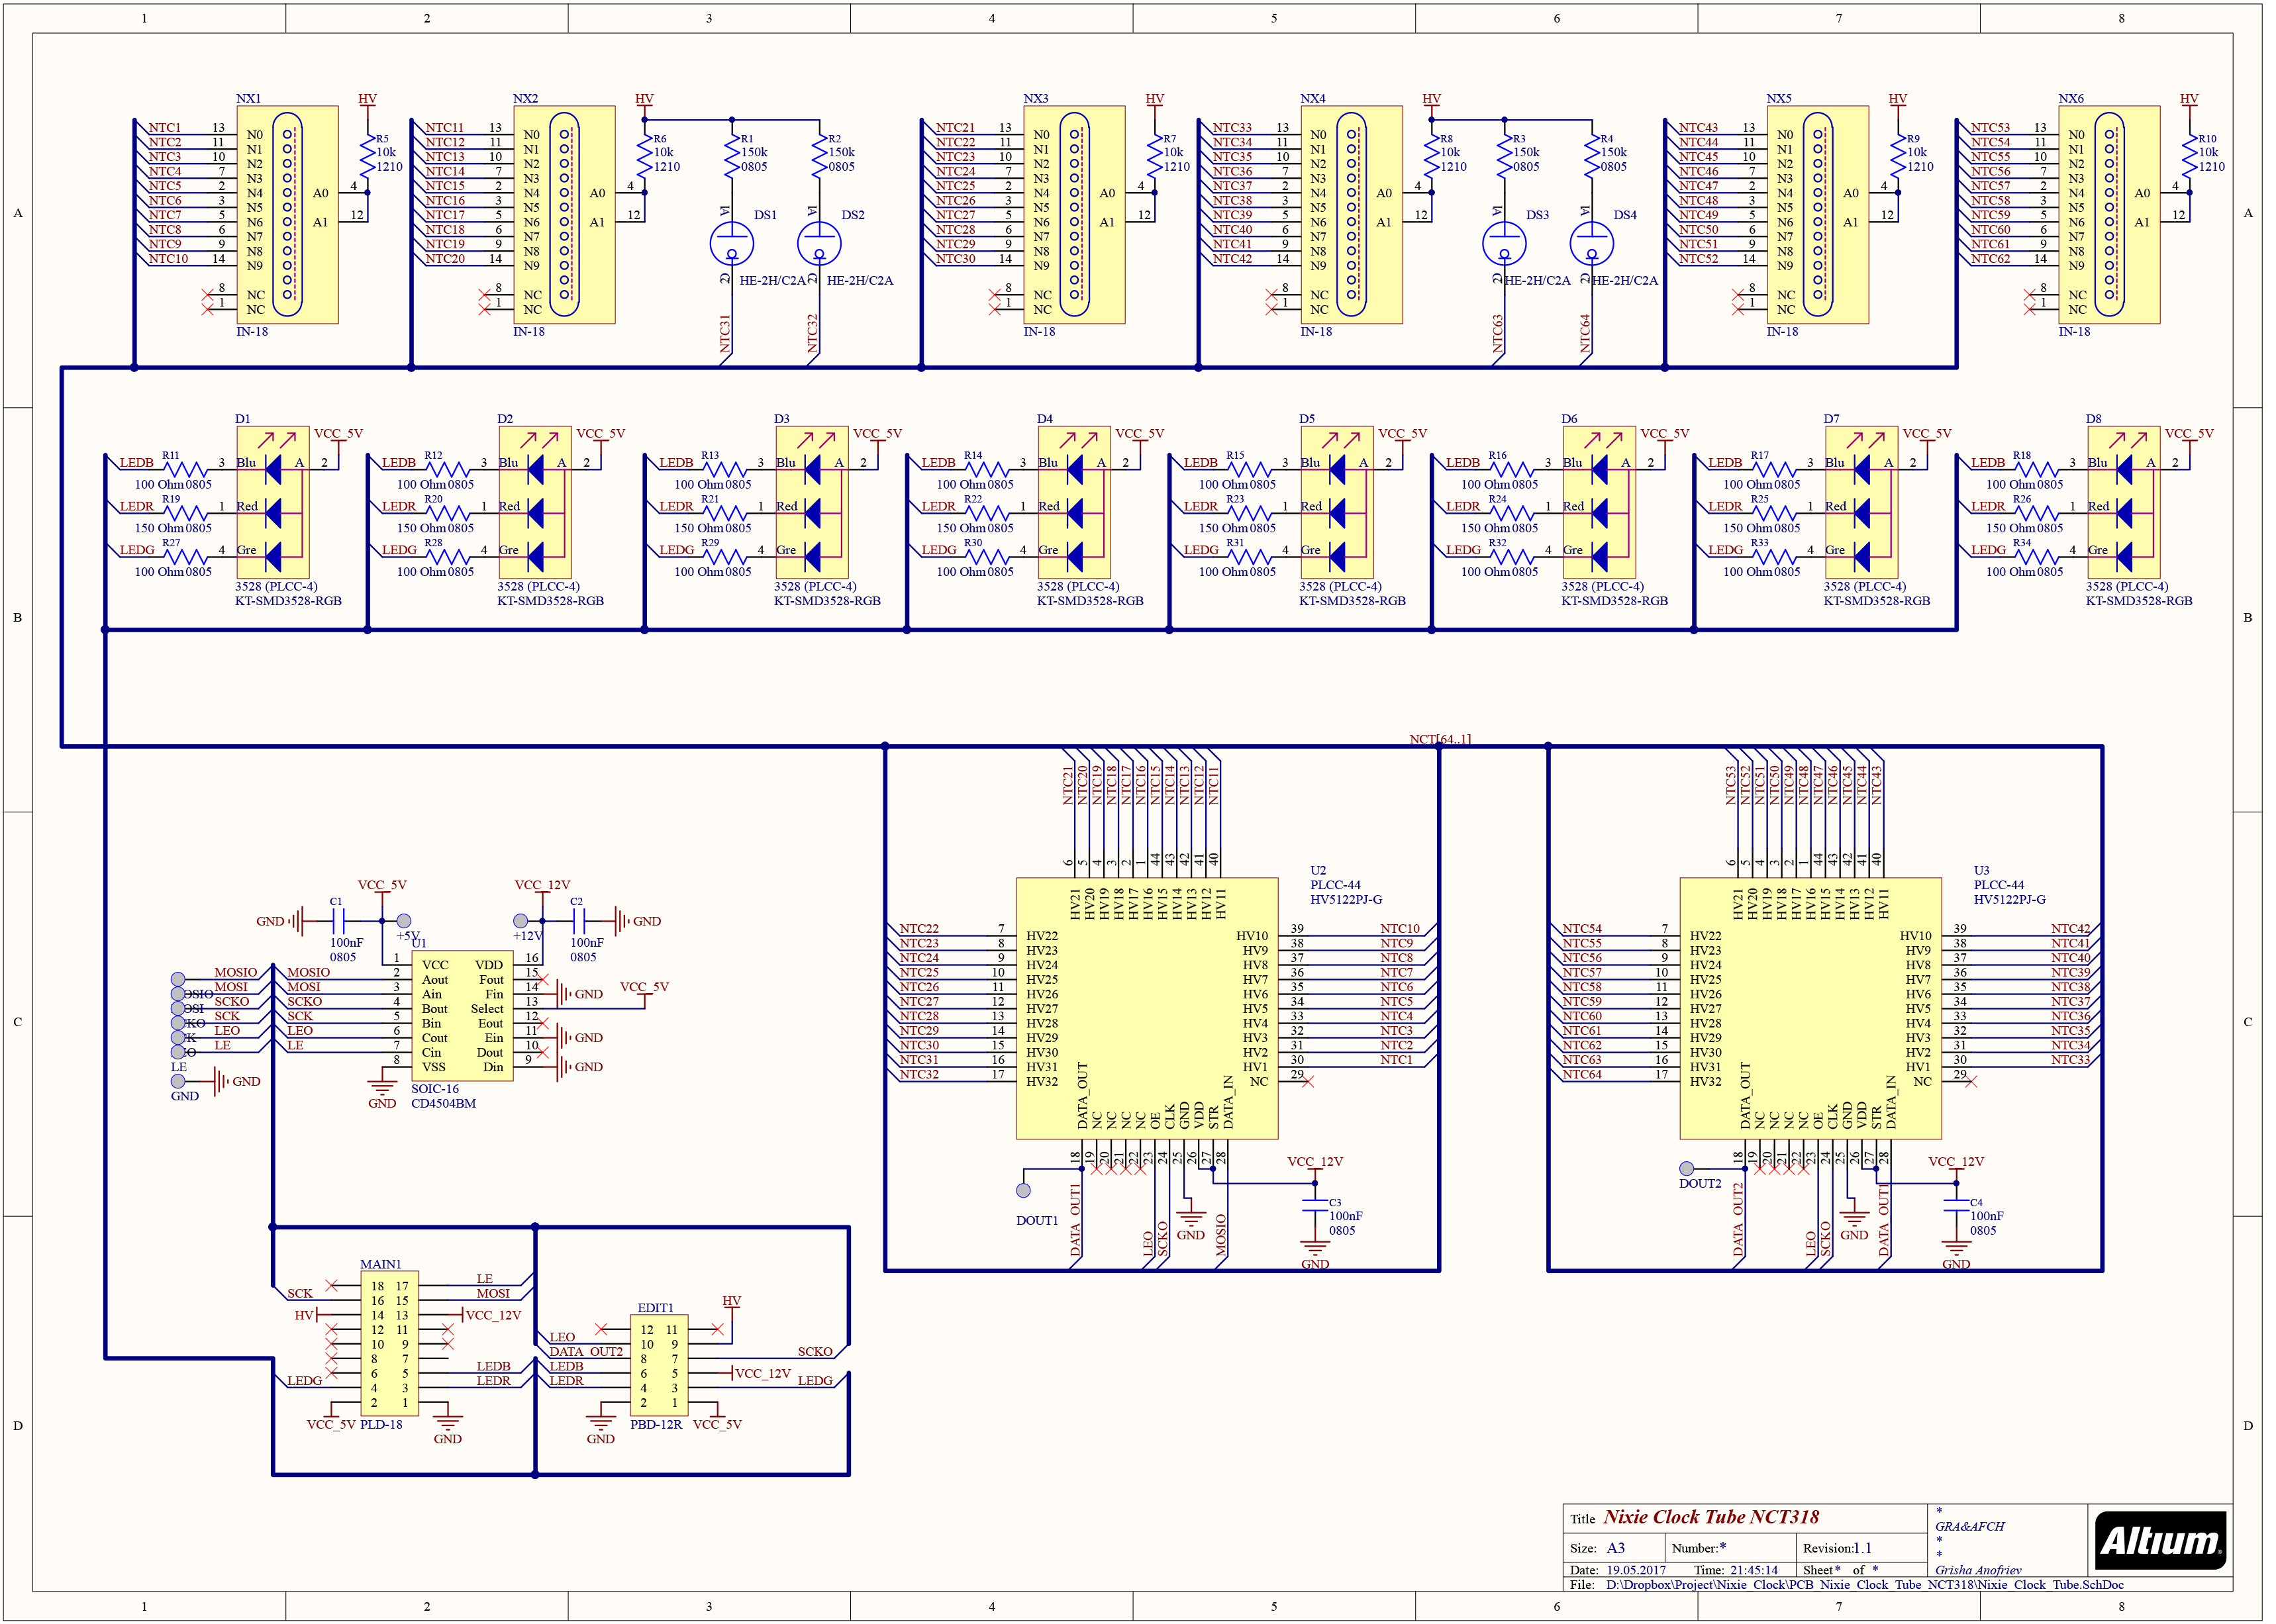 WRG-5324] Clock Schematics